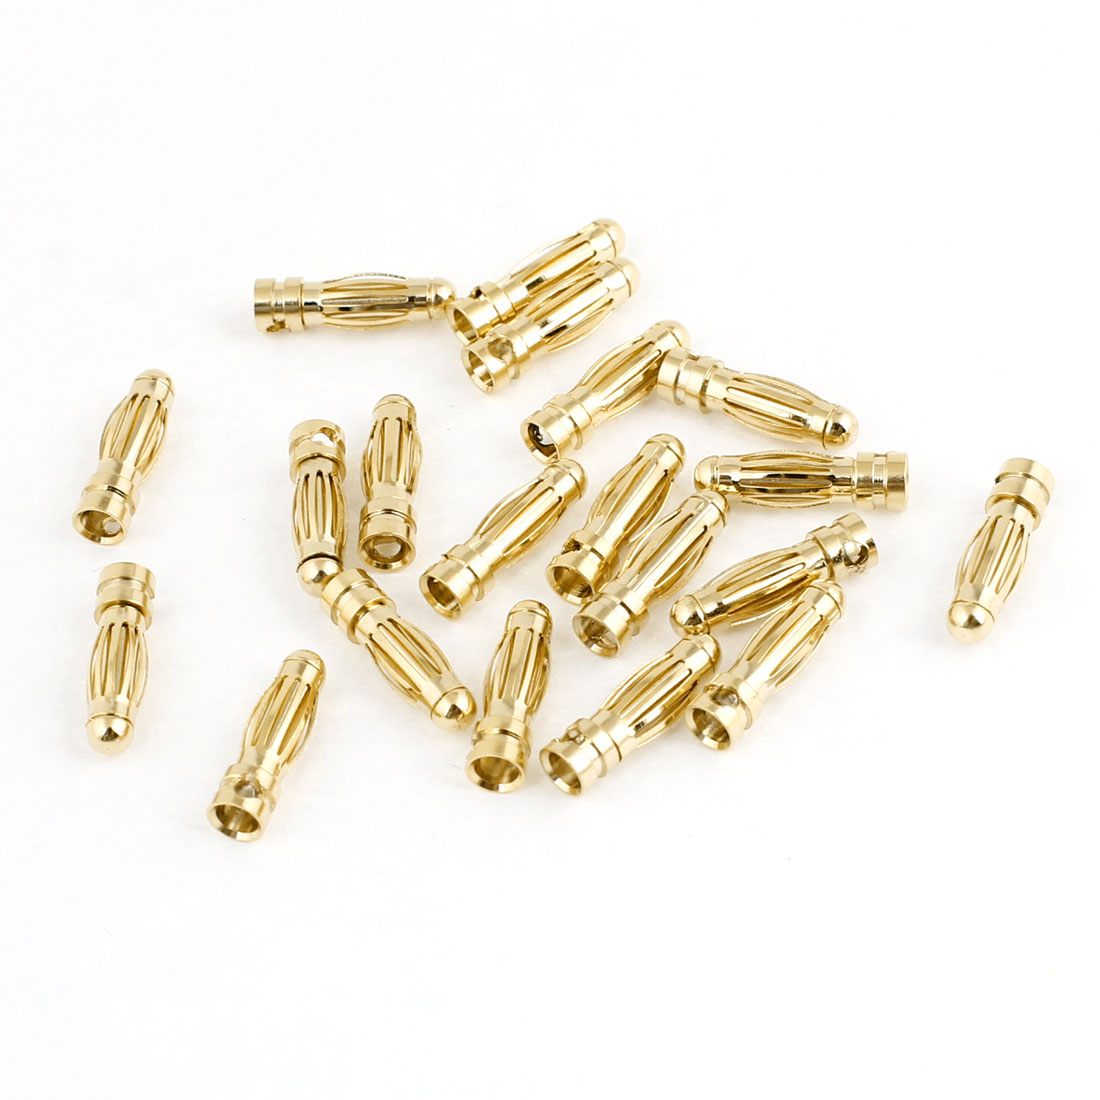 3mm Inside Dia Male Banana Connectors Replacement 20 Pcs